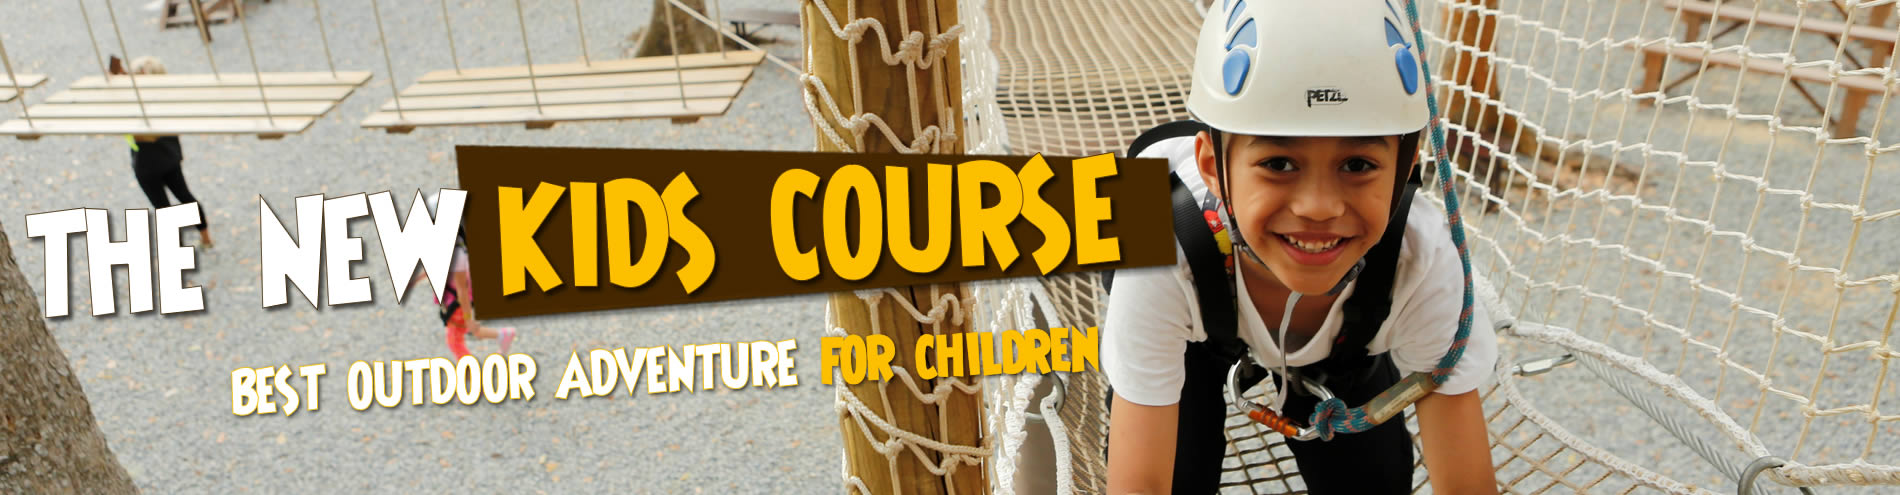 the kids course